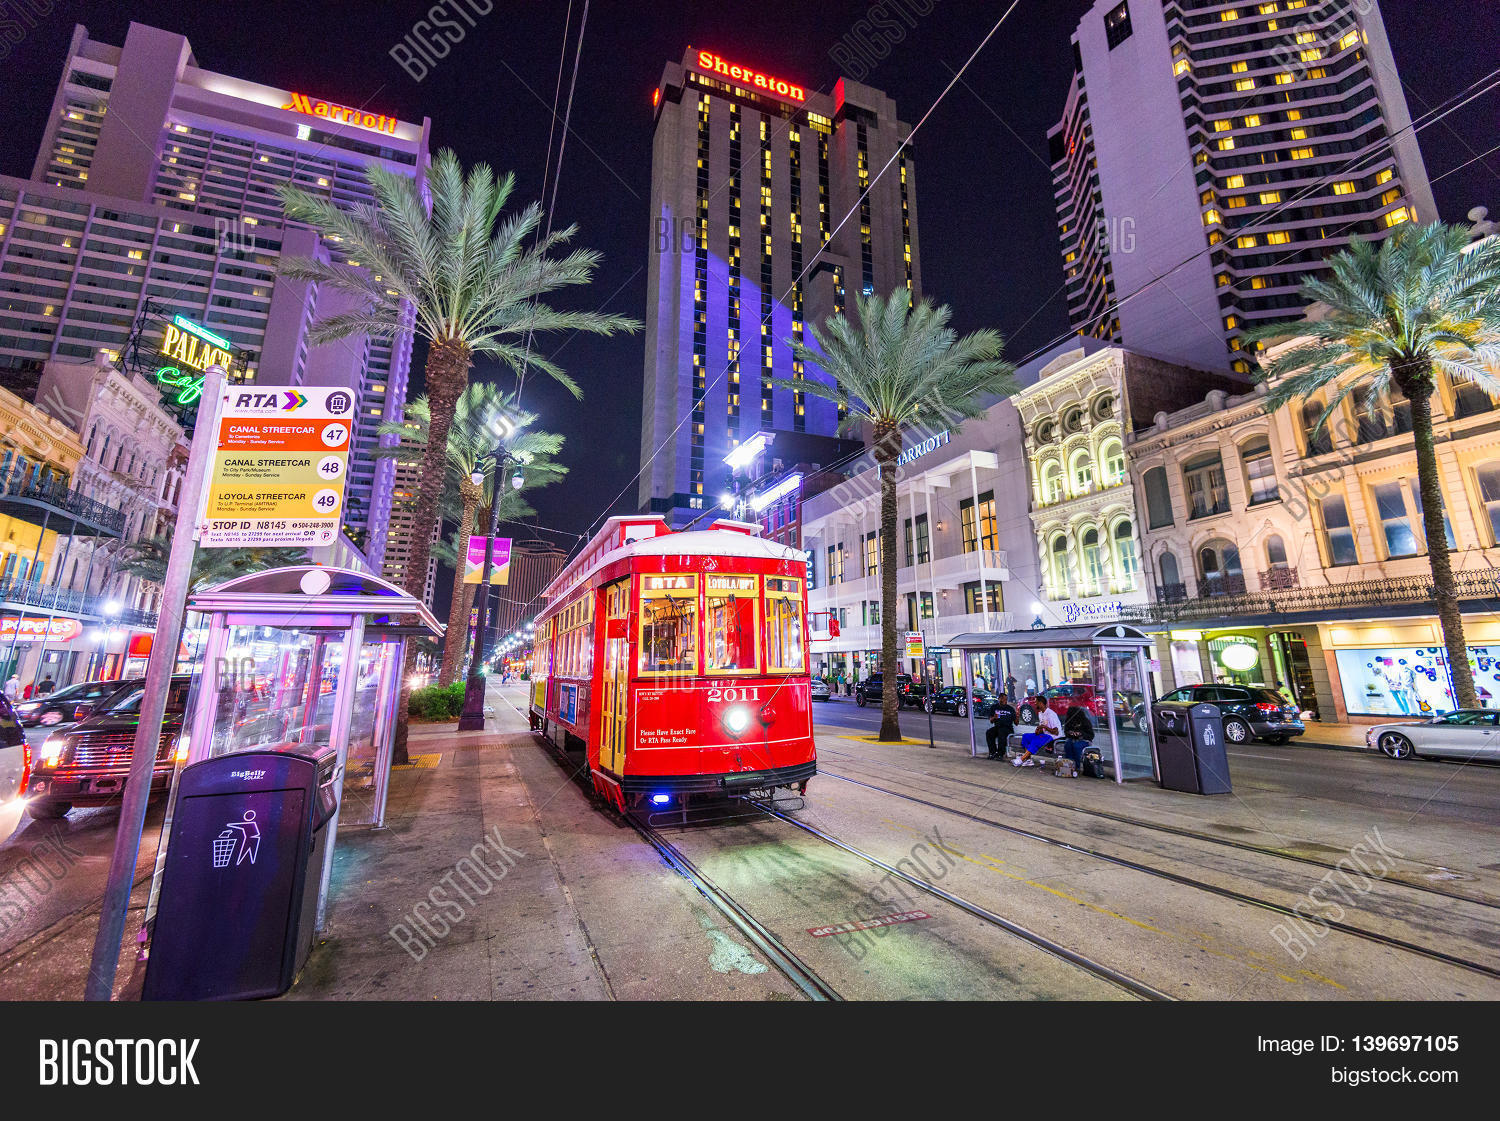 New orleans louisiana may 10 2016 a streetcar in for What to do in new orleans louisiana